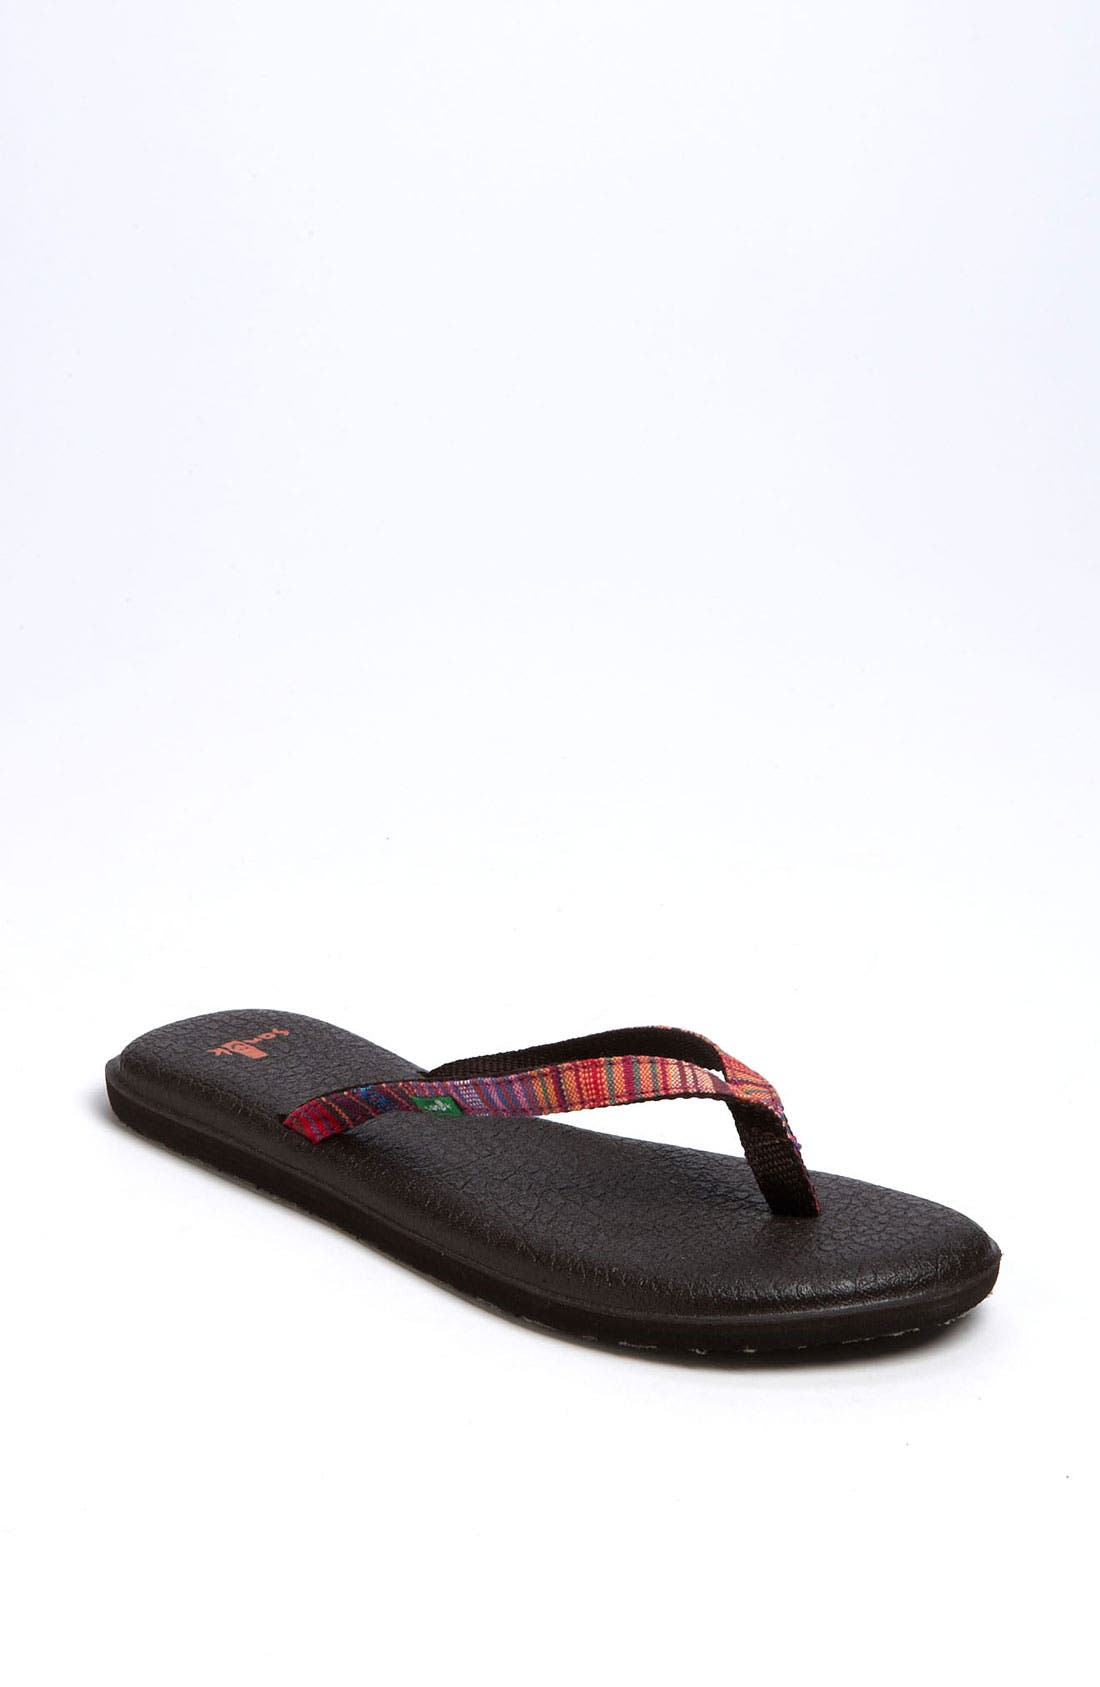 Alternate Image 1 Selected - Sanuk 'Yoga Spree Funk' Flip Flop (Women)